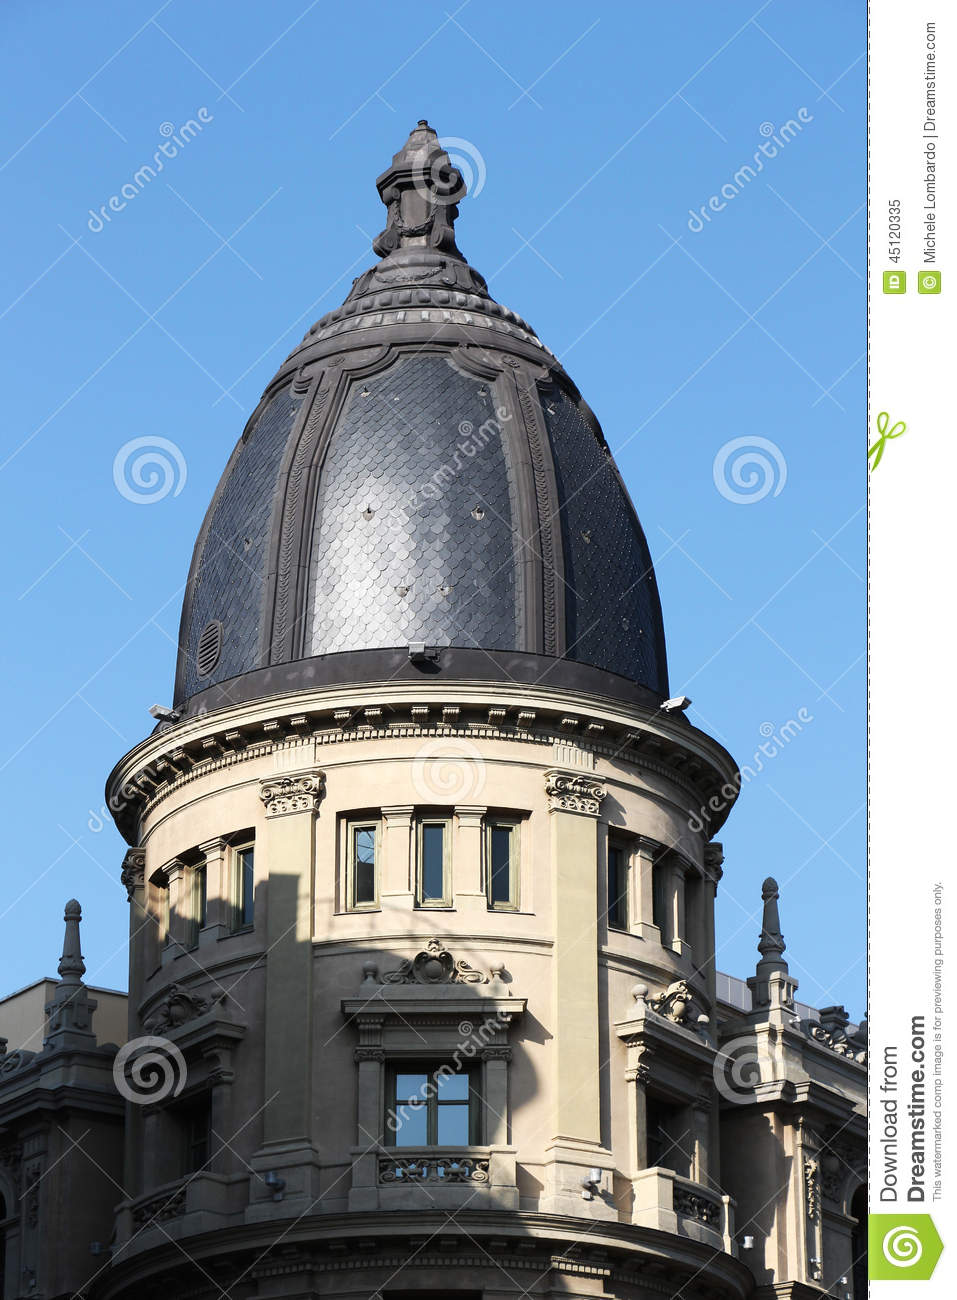 Art deco building of madrid spain stock photo image - Art deco espana ...